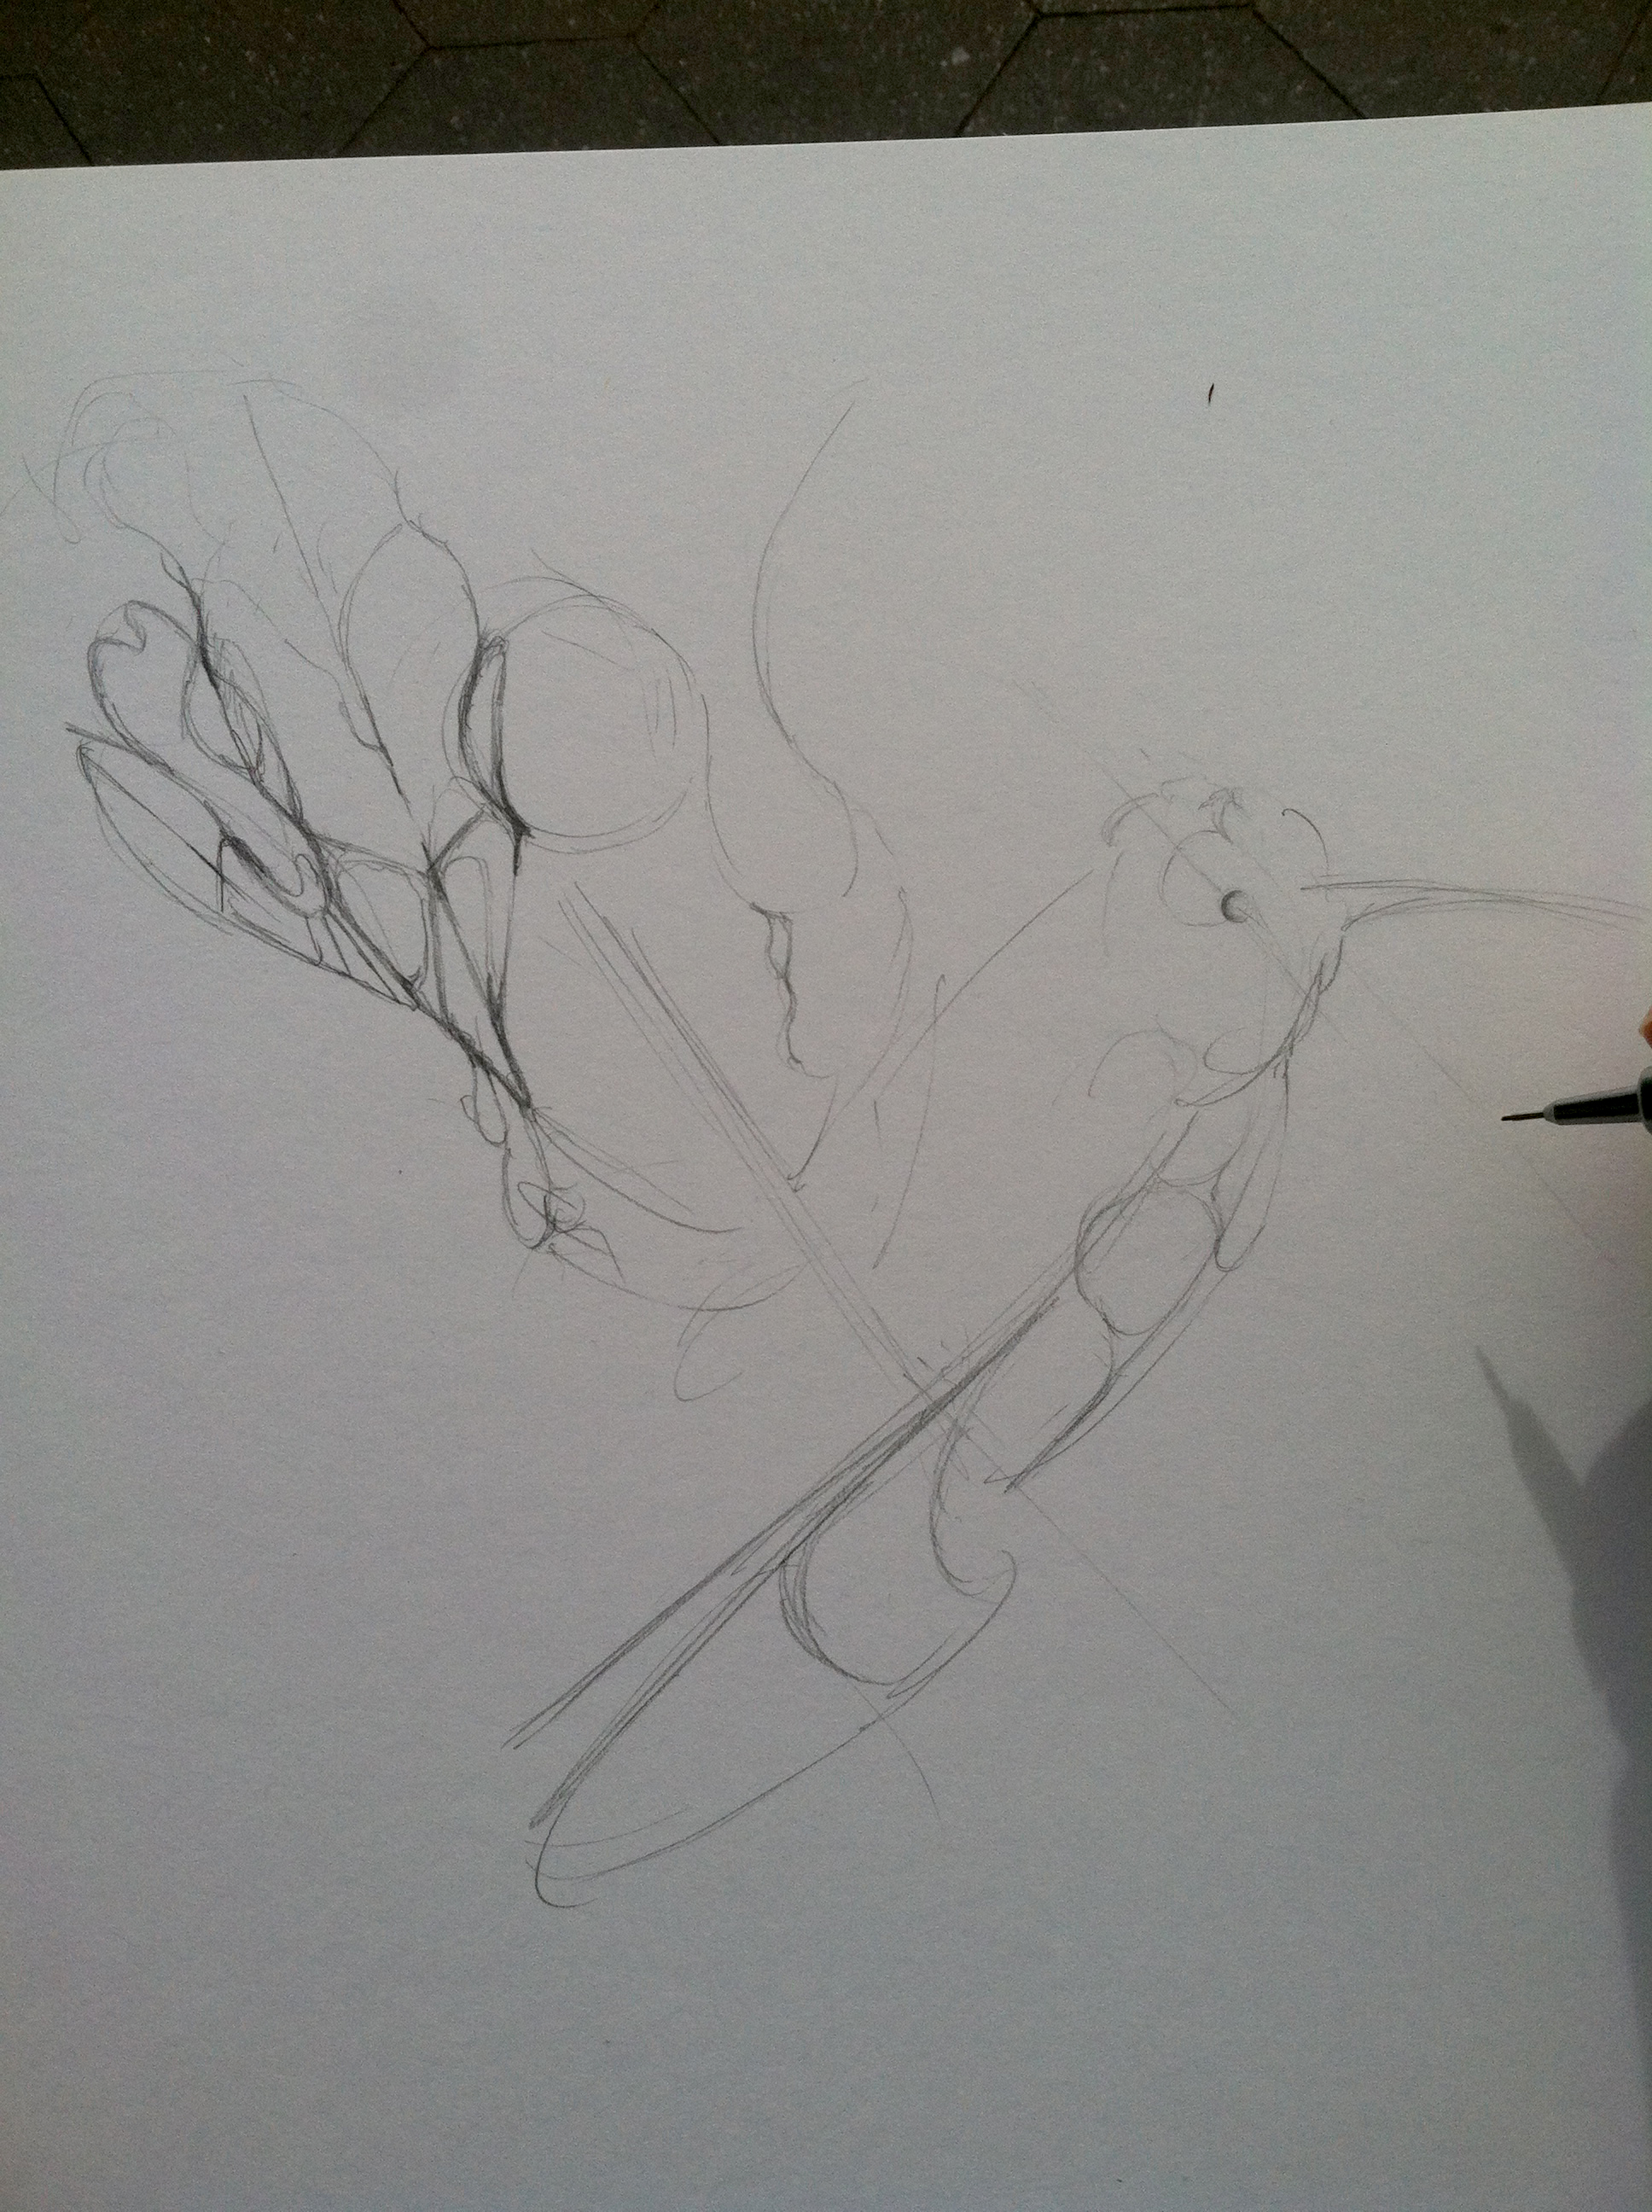 Establishing general shape and idea of the drawing